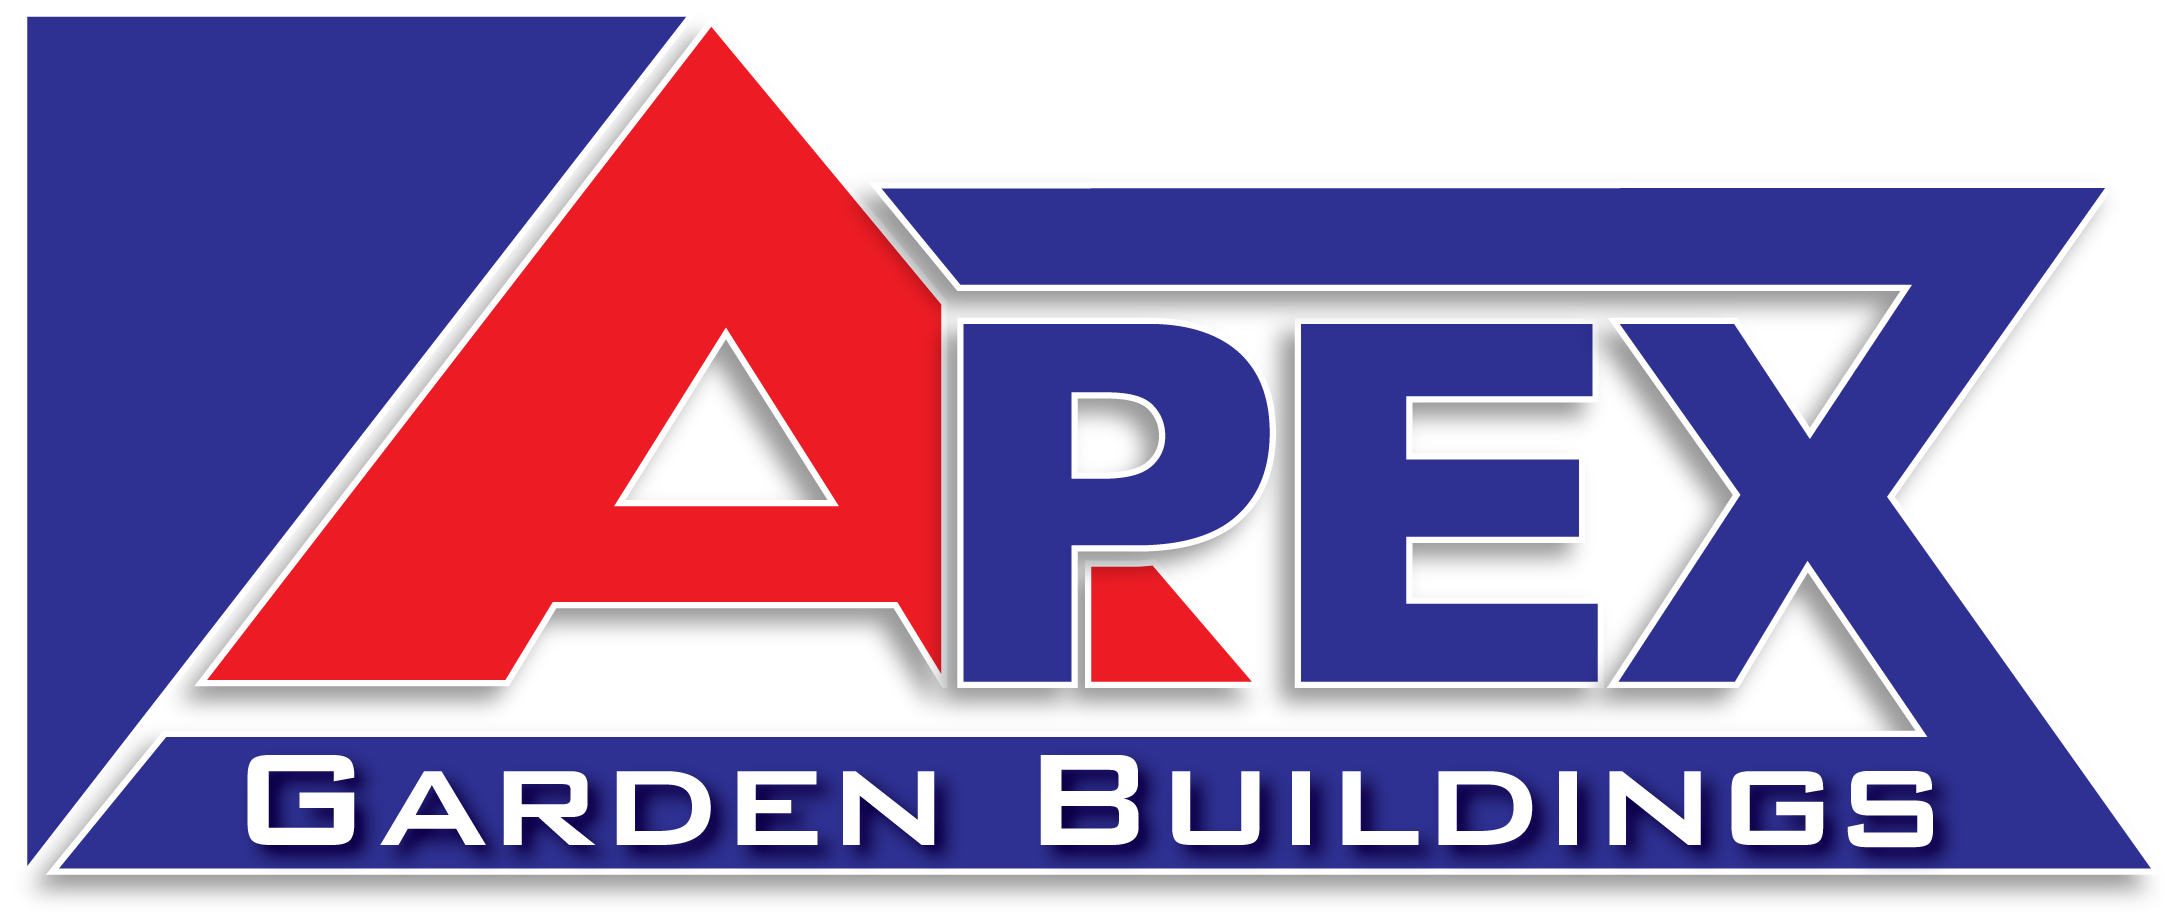 Apex Garden Buildings, proud to be supporting Hardie Race Promotions